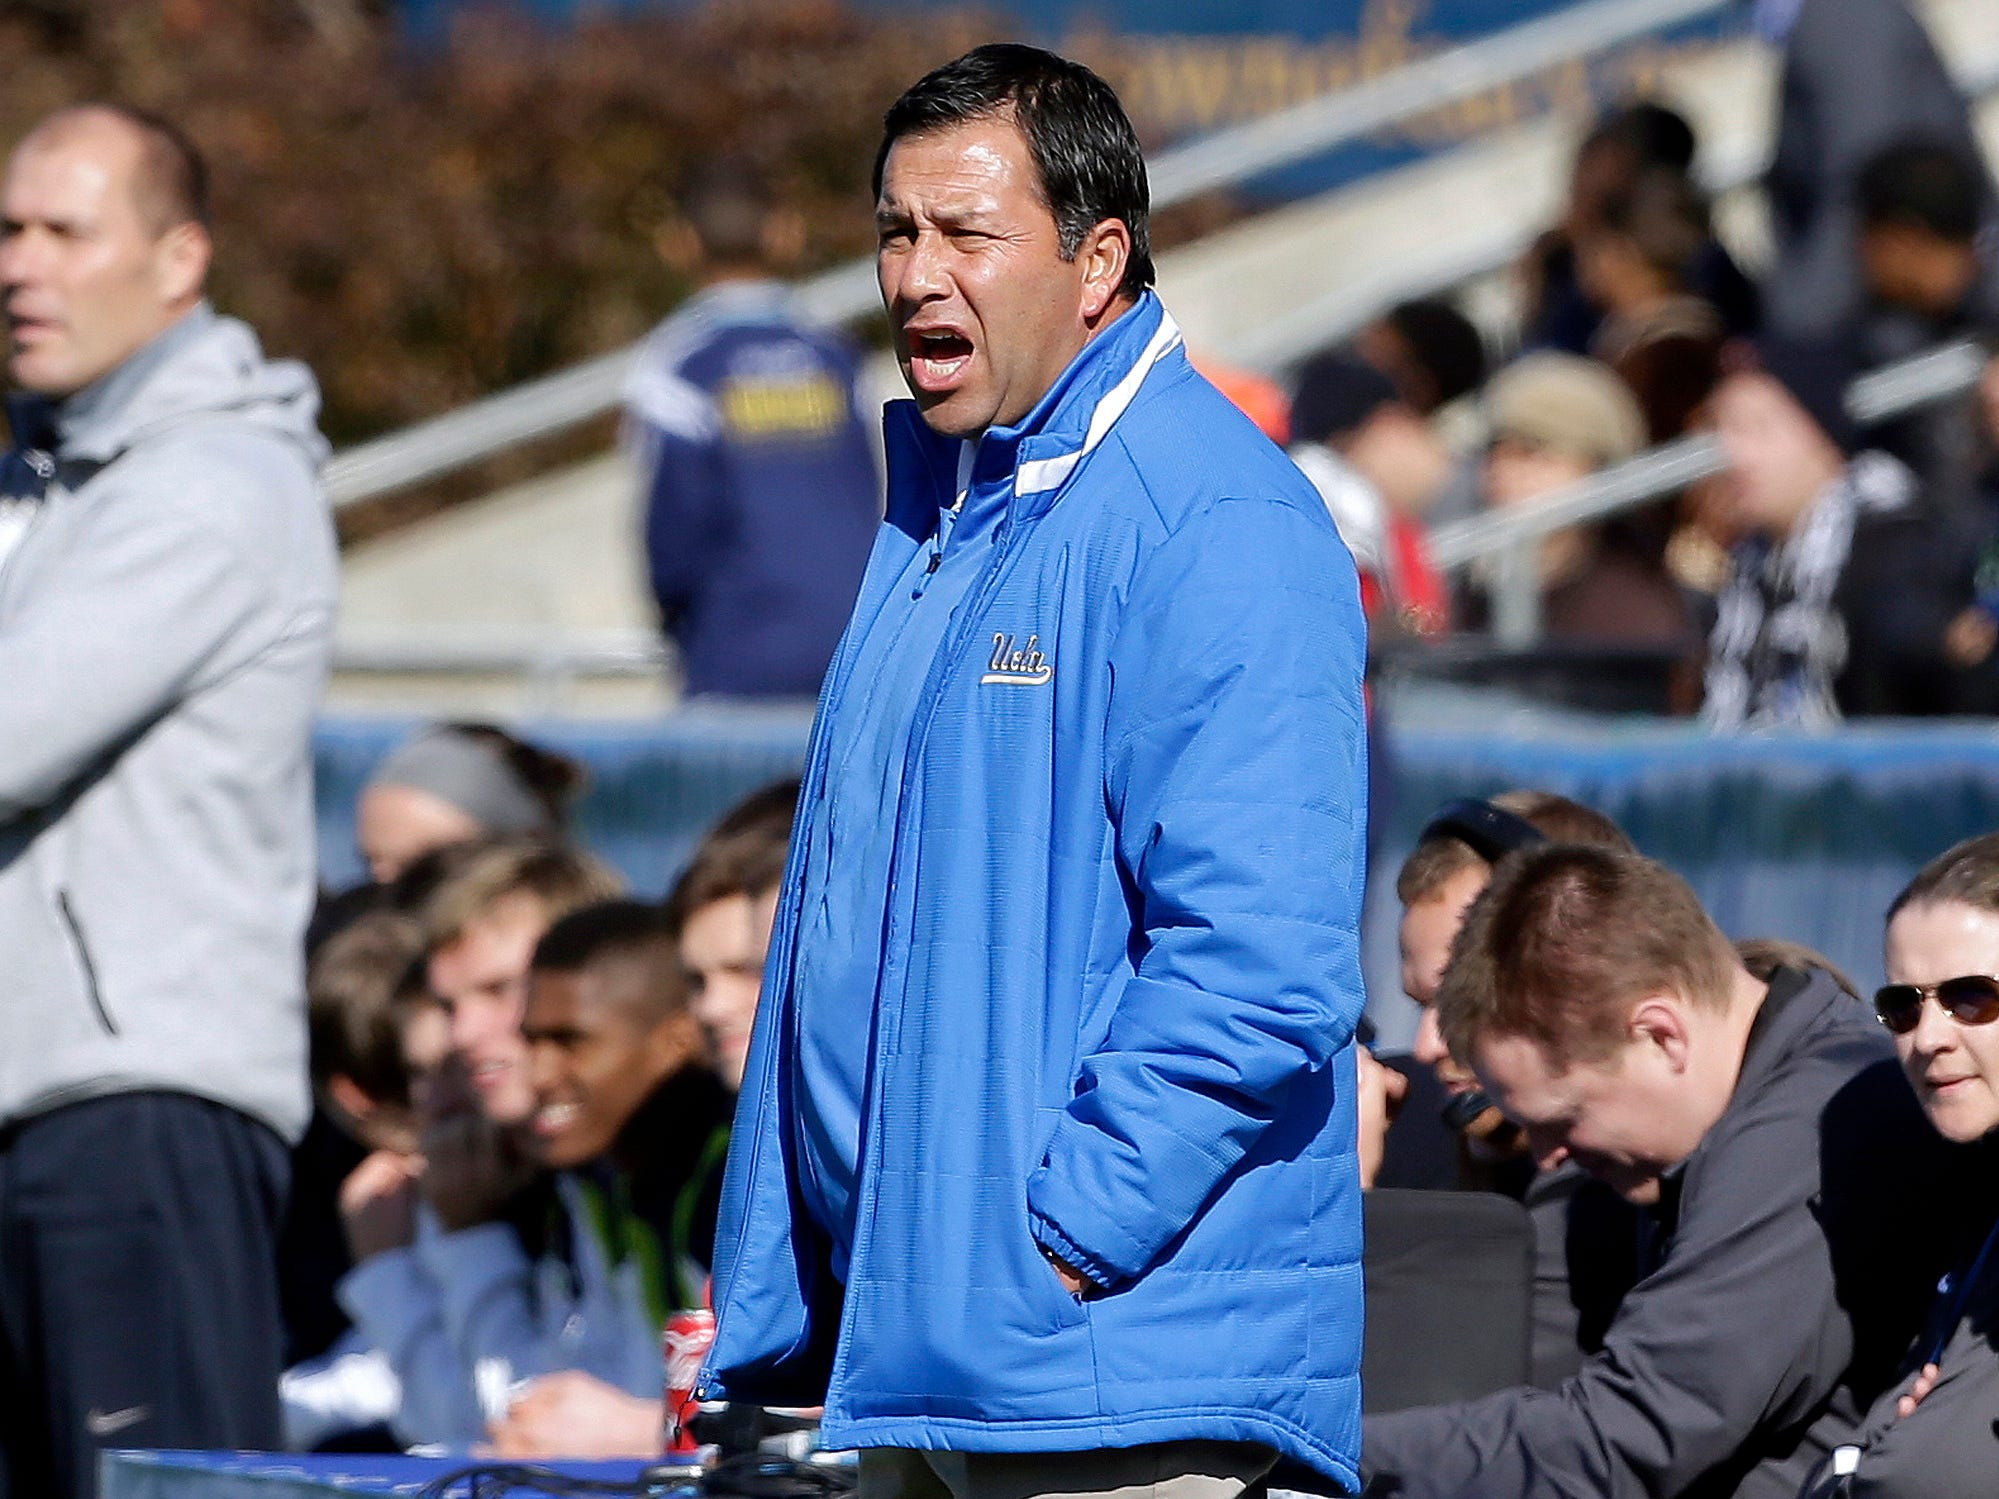 UCLA coach Jorge Salcedo reacts during the first half of an NCAA College Cup championship soccer game against Virginia in Cary, N.C. on Dec. 14, 2014. Salcedo was charged on March 12, 2019, in a scheme in which wealthy parents bribed college coaches and insiders at testing centers to get their children into some of the most elite schools in the country, federal prosecutors said. UCLA said that Salcedo has been placed on leave pending a review and will have no involvement with the team.